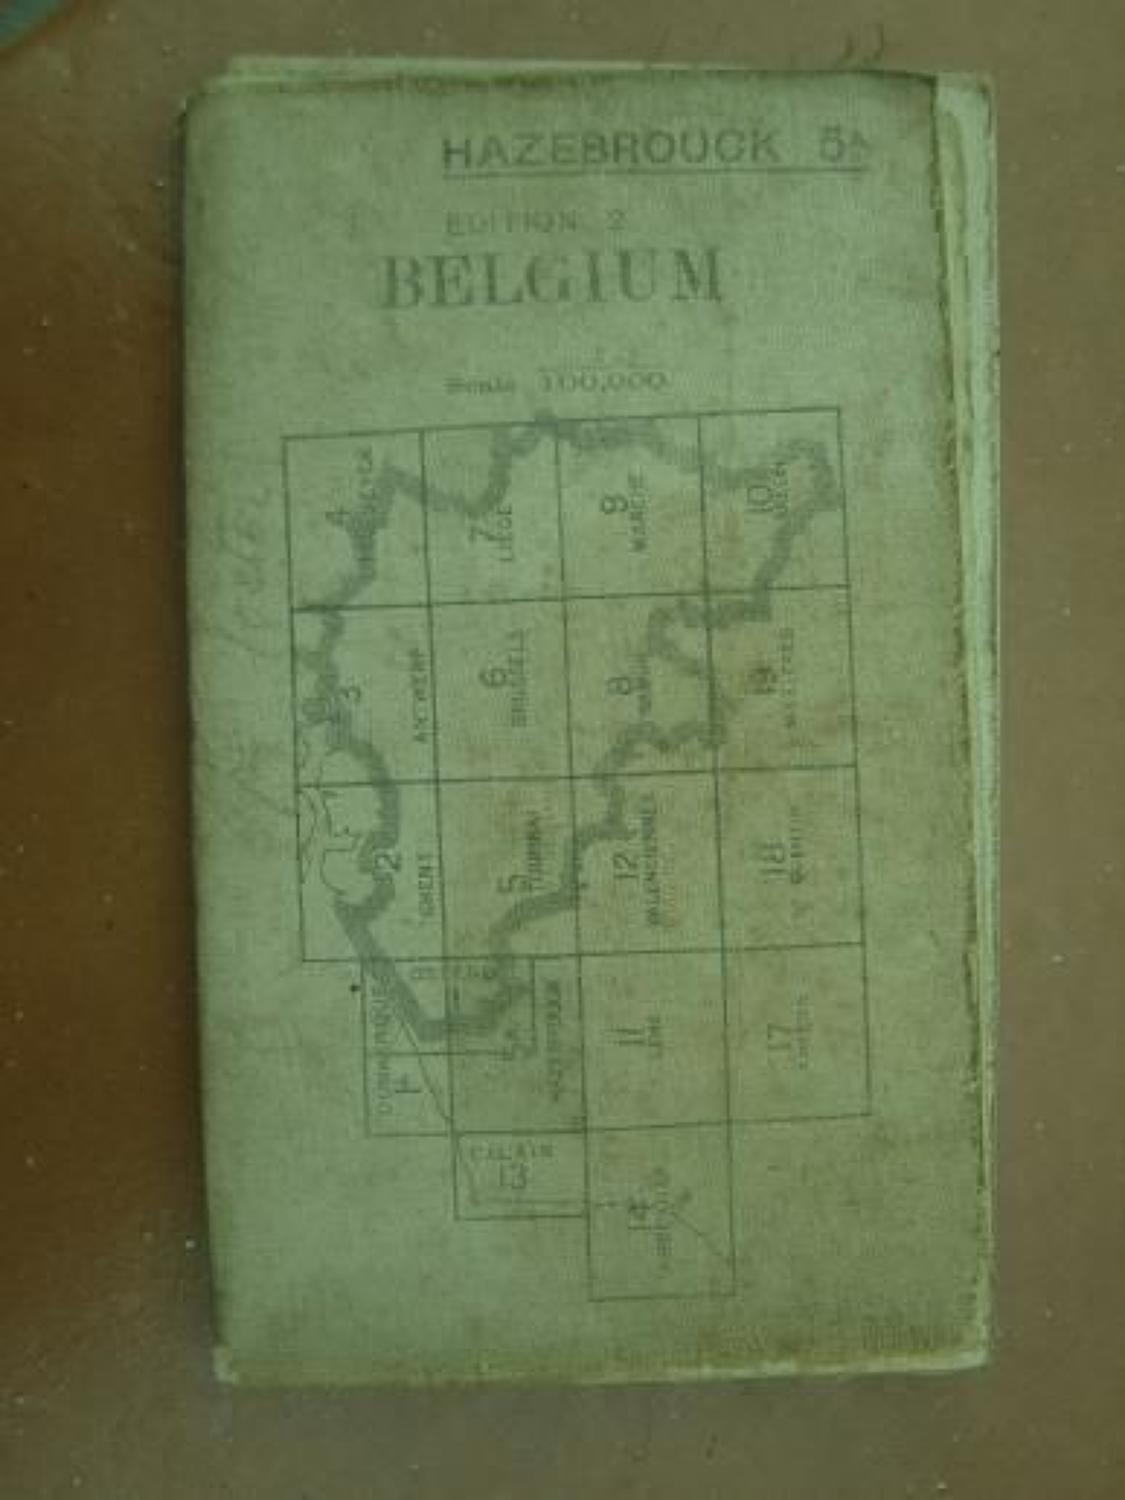 WW1 1916 Dated Map of Hazebrouck Belgium. Includes Ypres.